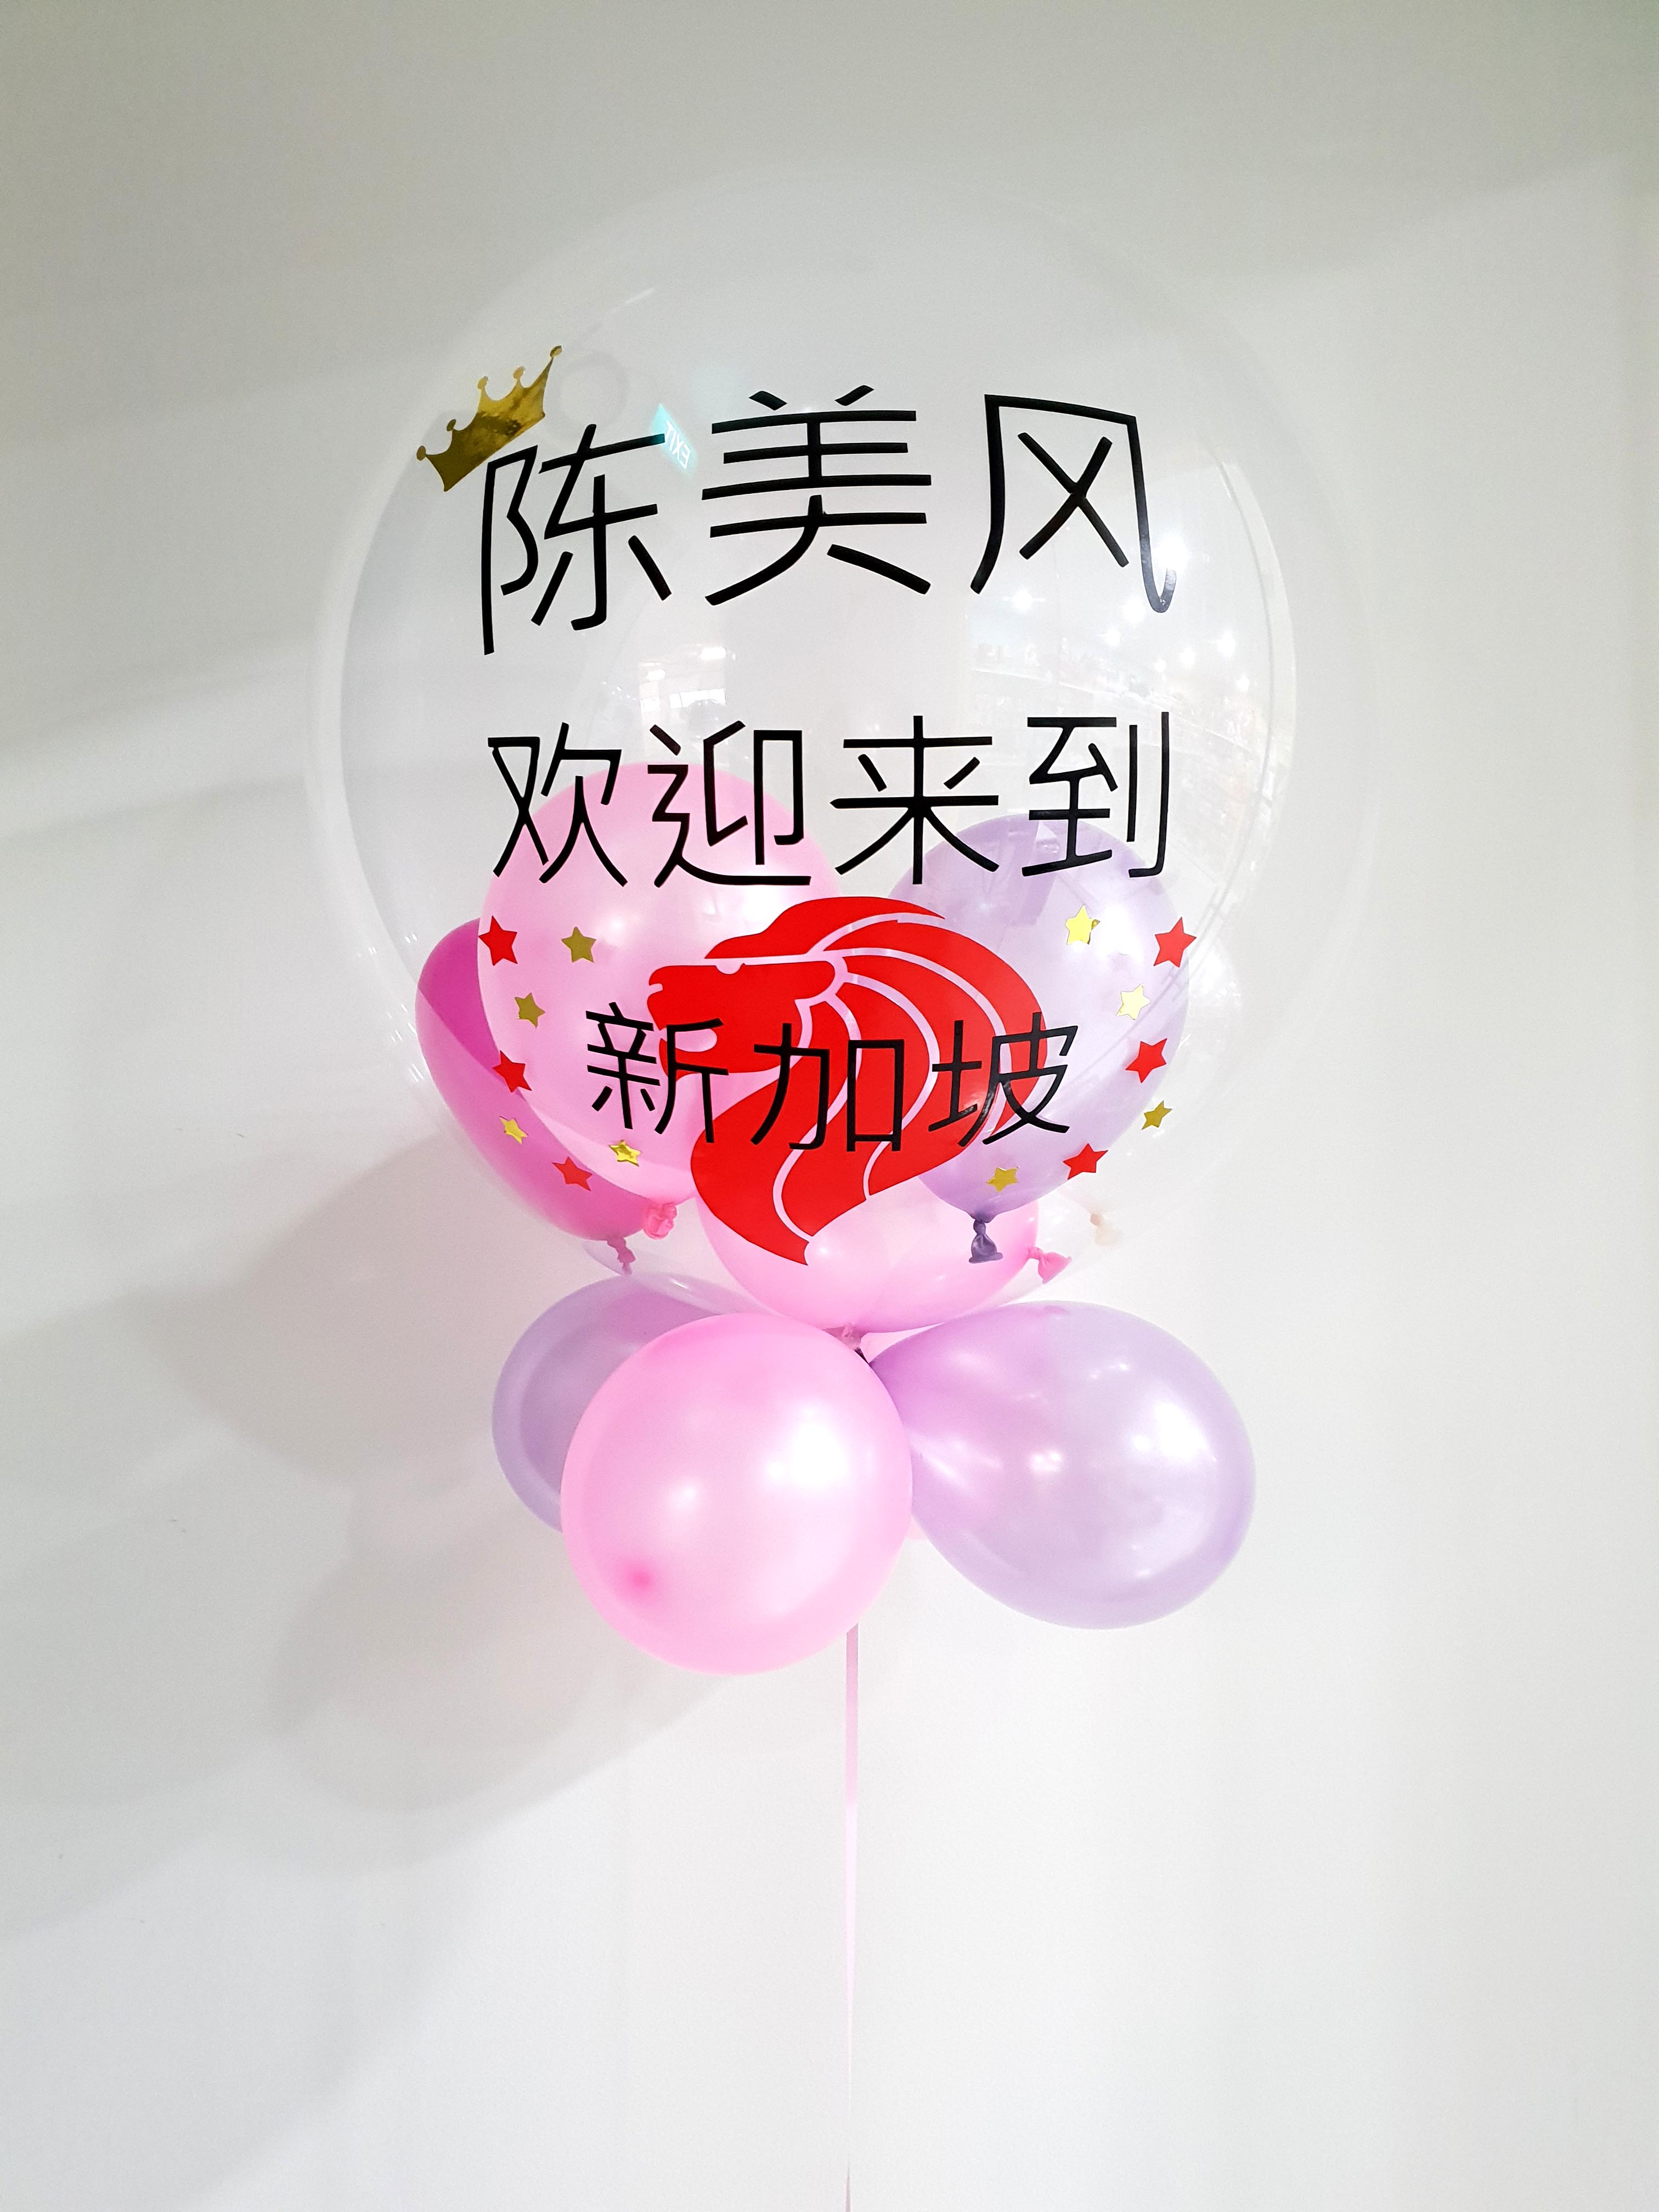 Chinese Welcome Customize Bubble Balloon Size: 24""